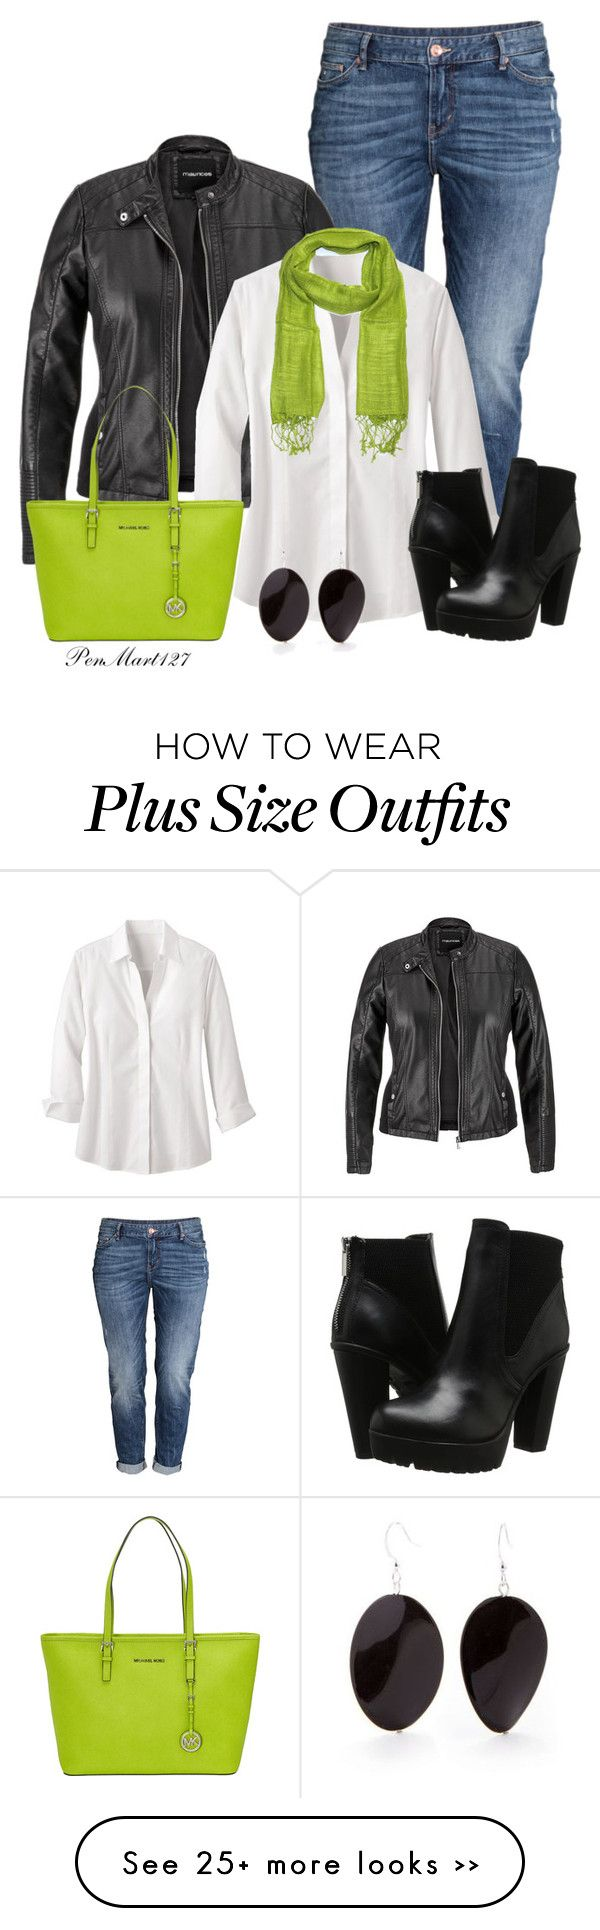 """""""Get your Moto Running Entry 1 #PlusSize"""" by penny-martin on Polyvore featuring H&M, maurices, Foxcroft, Steve Madden, MICHAEL Michael Kors and Kim Rogers"""